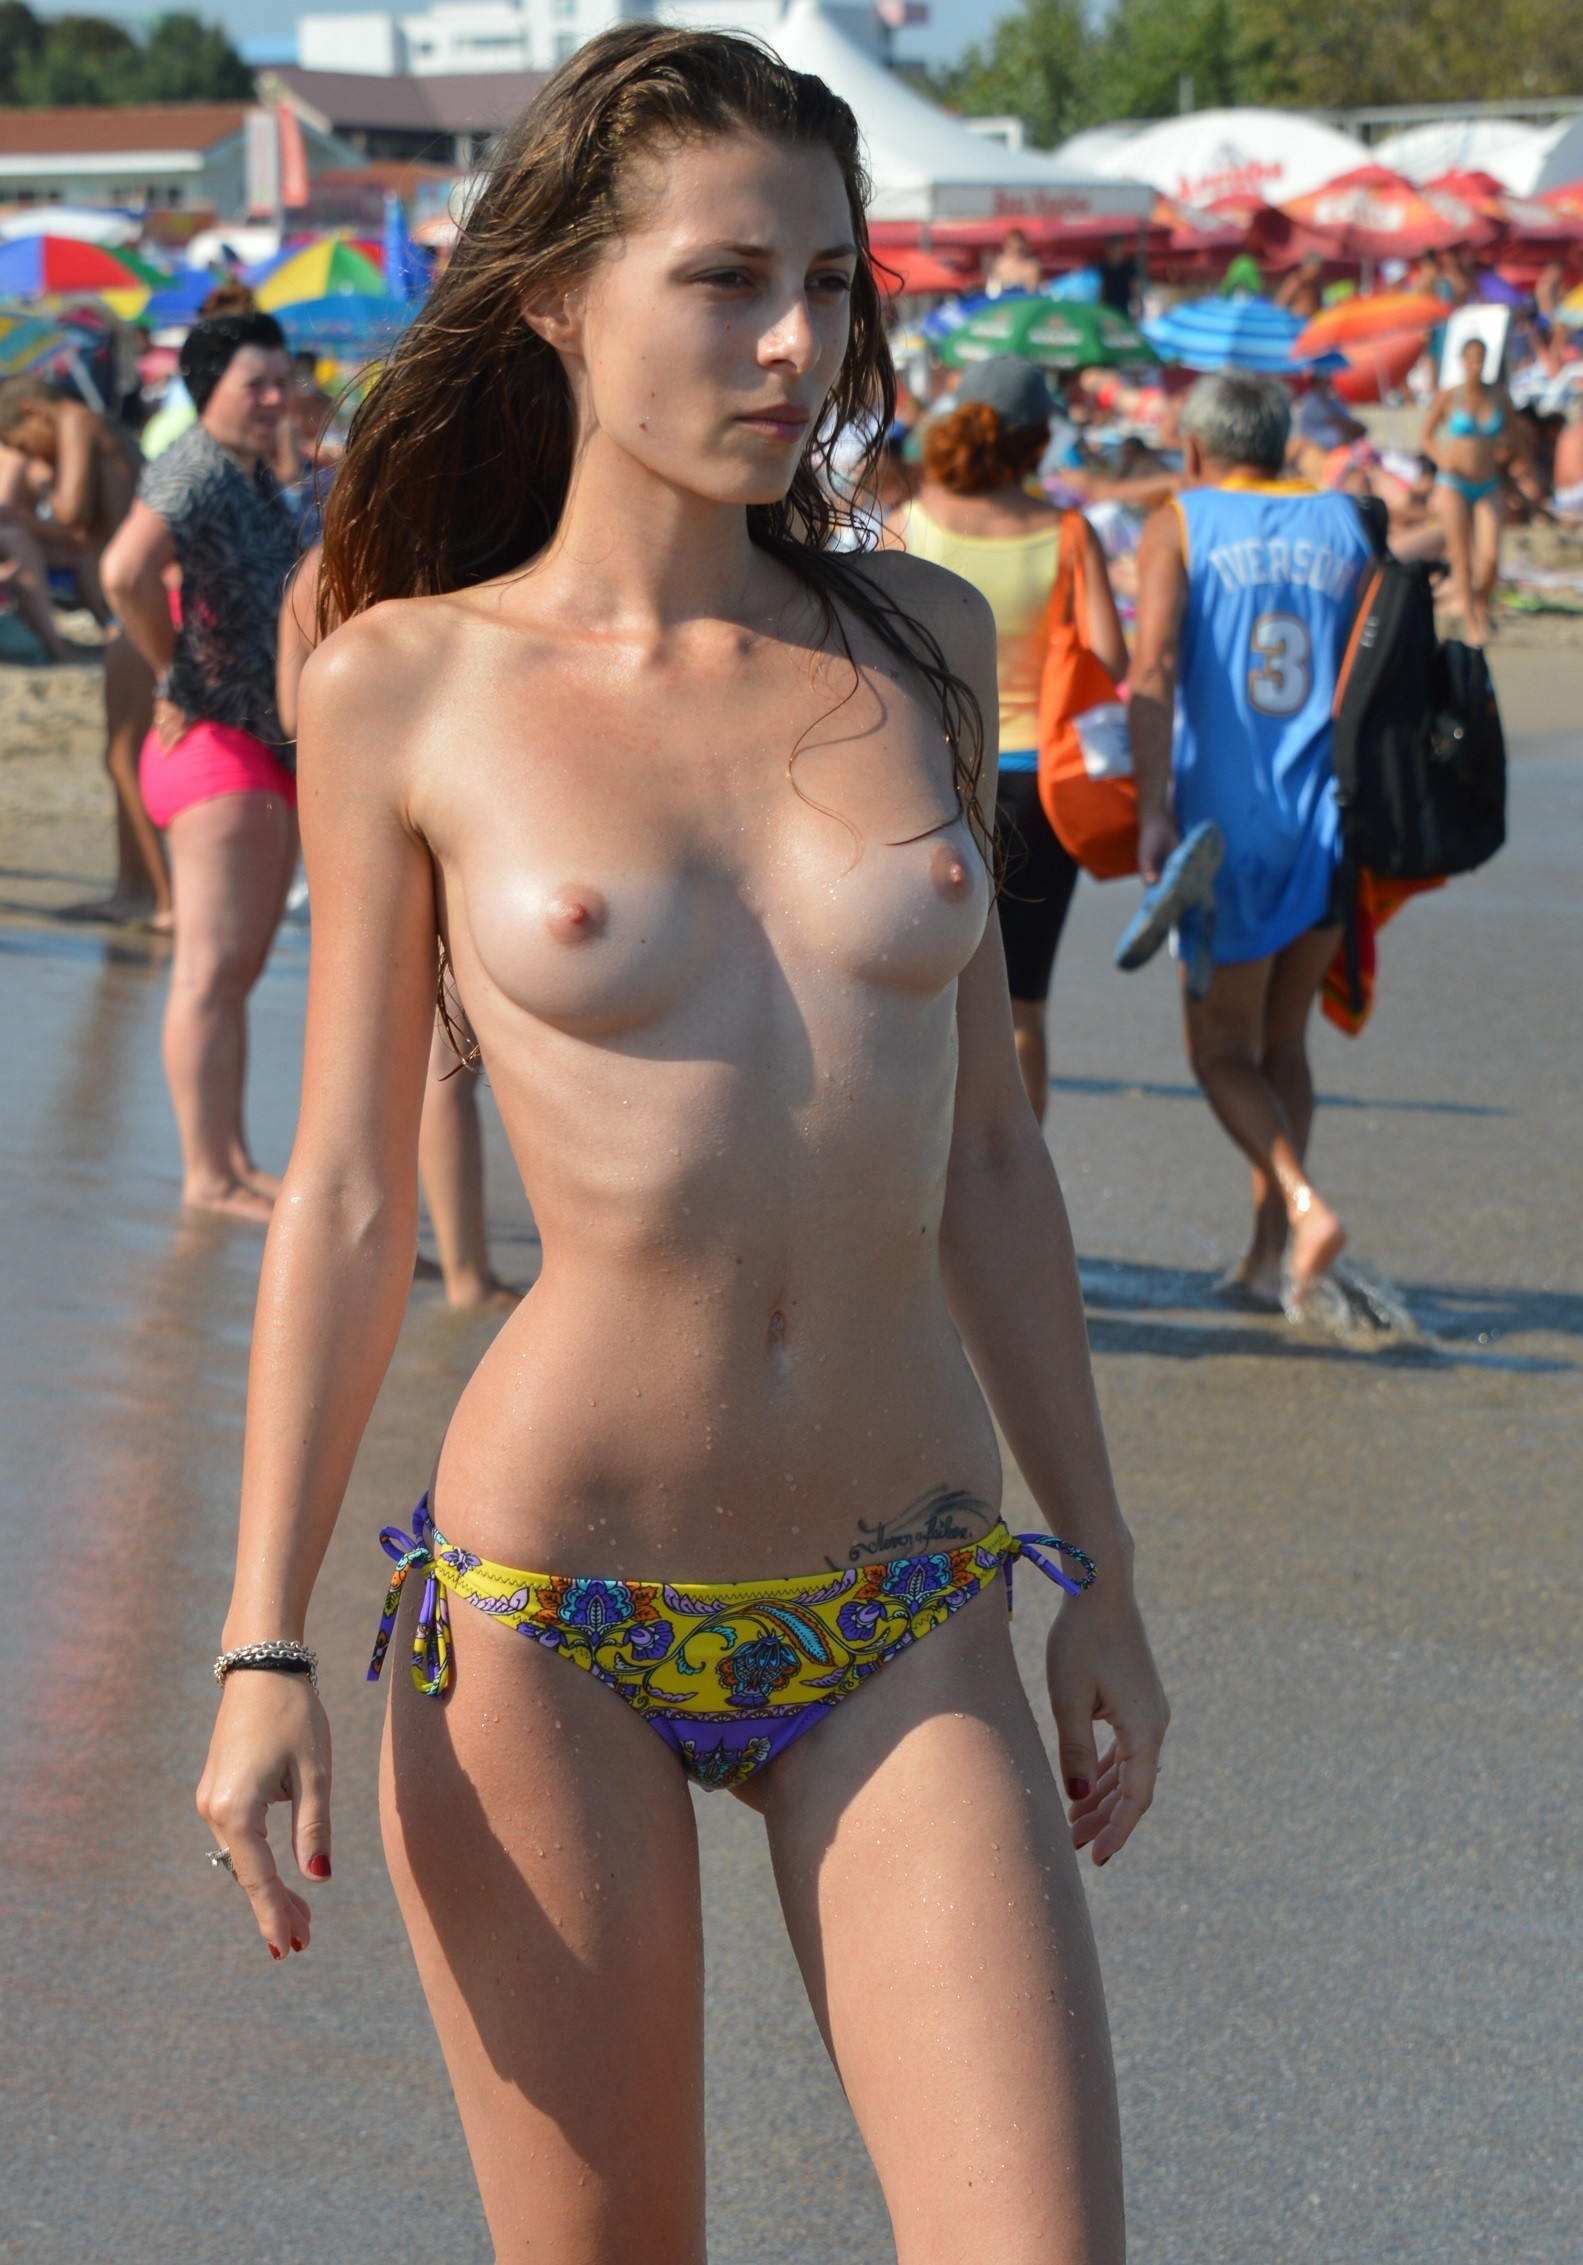 nudists-girls-boobs-beach-topless-mix-vol7-76